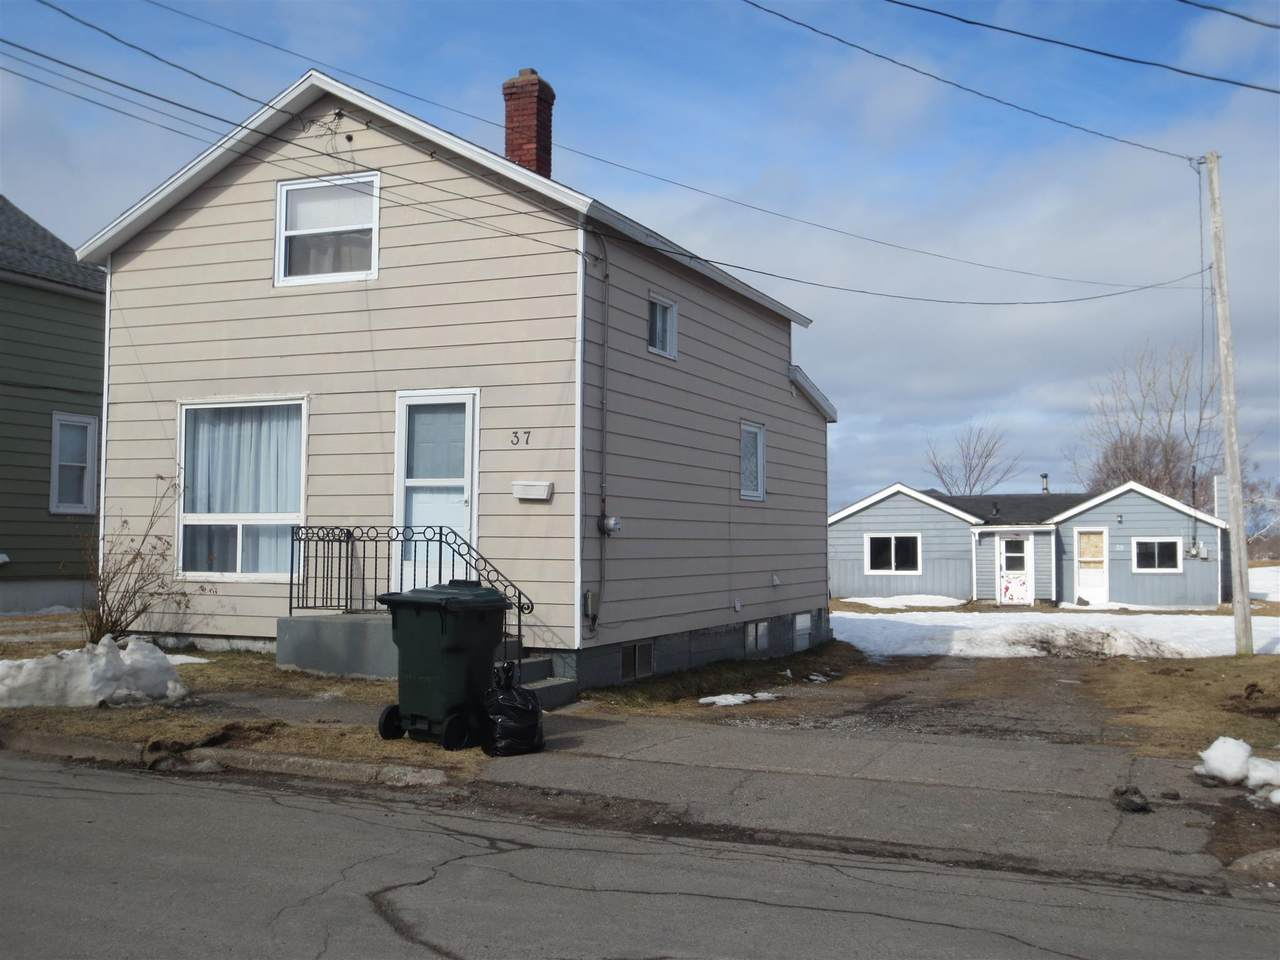 39 Colby Street - Photo 1